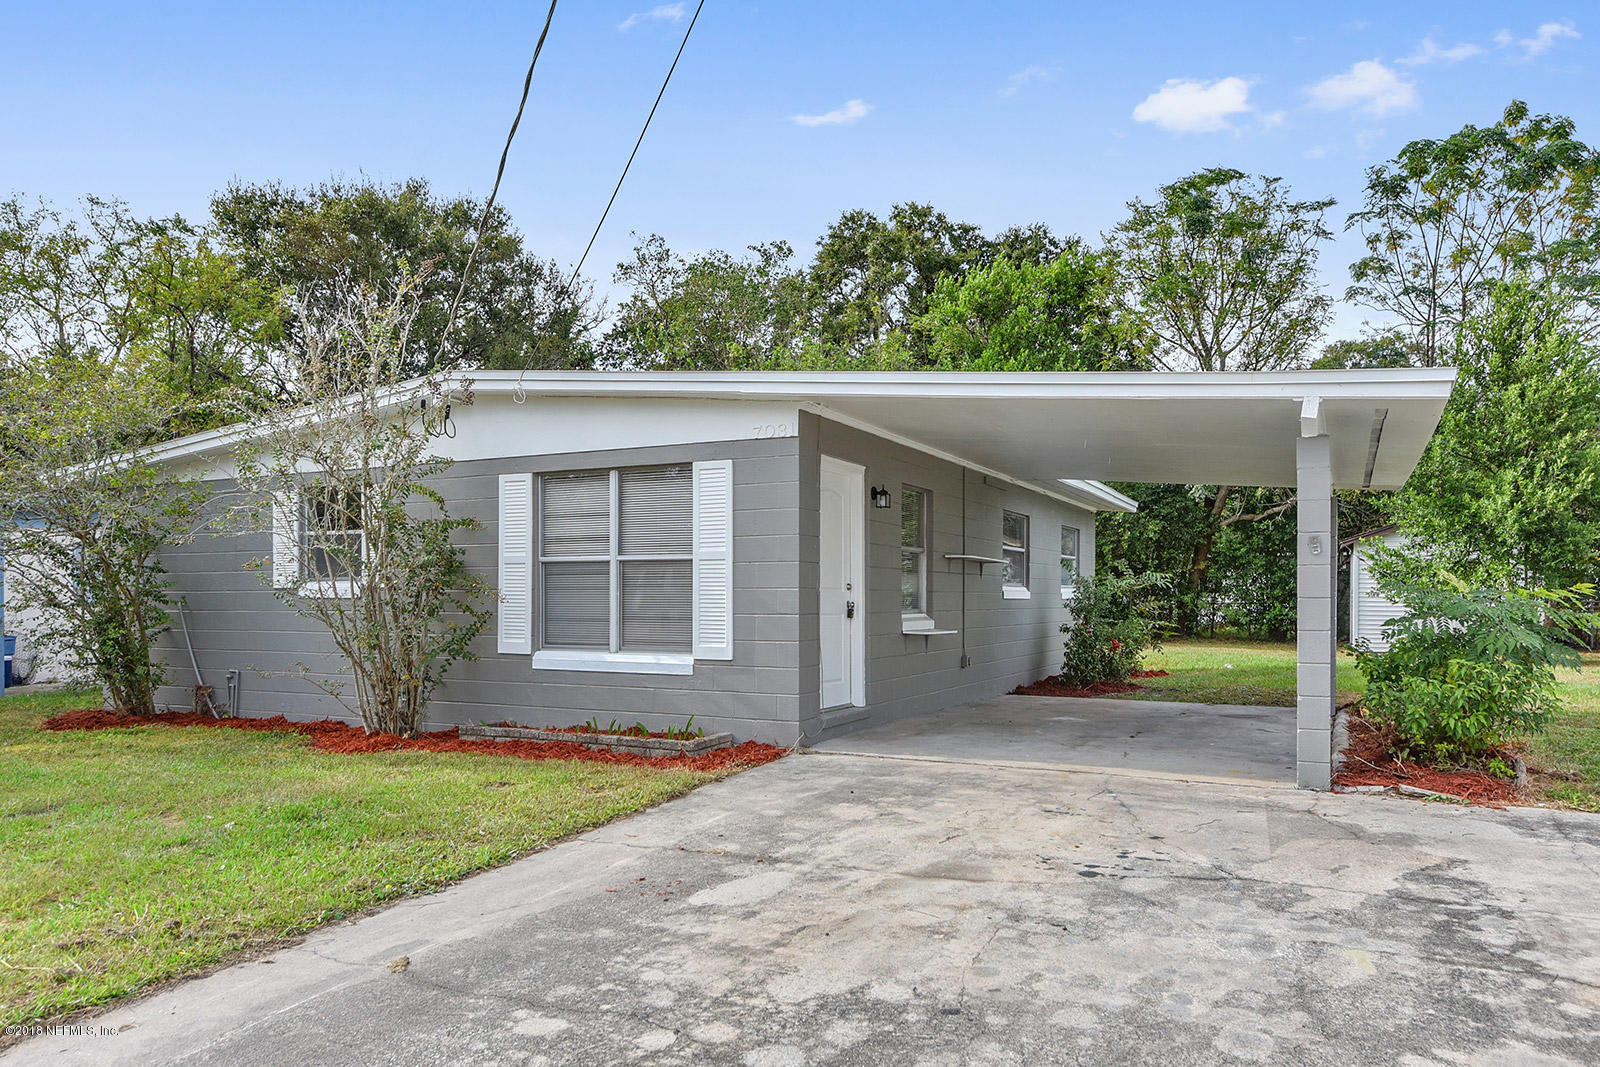 7031 OAKNEY, JACKSONVILLE, FLORIDA 32211, 3 Bedrooms Bedrooms, ,1 BathroomBathrooms,Residential - single family,For sale,OAKNEY,965351